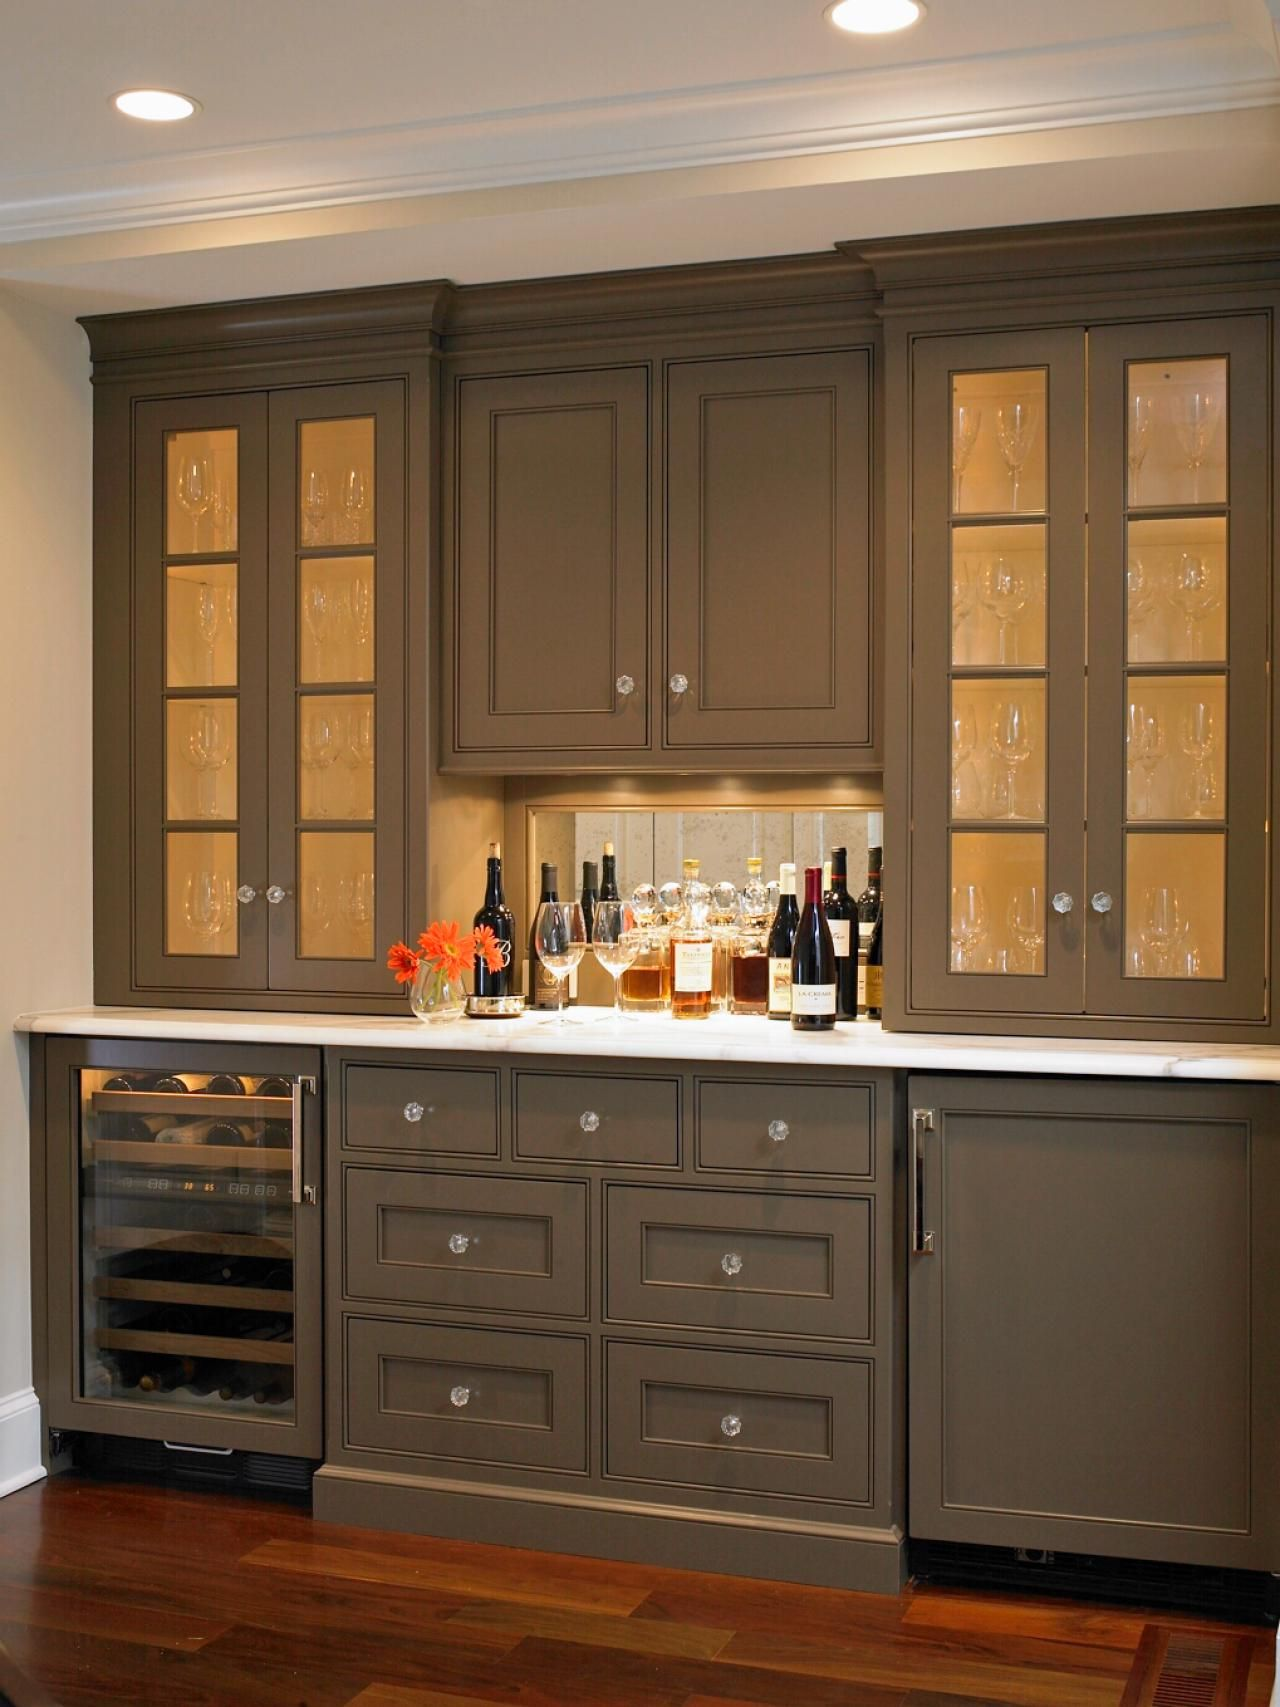 Kitchen Top Cabinet Best Pictures Of Kitchen Cabinet Color Ideas From Top